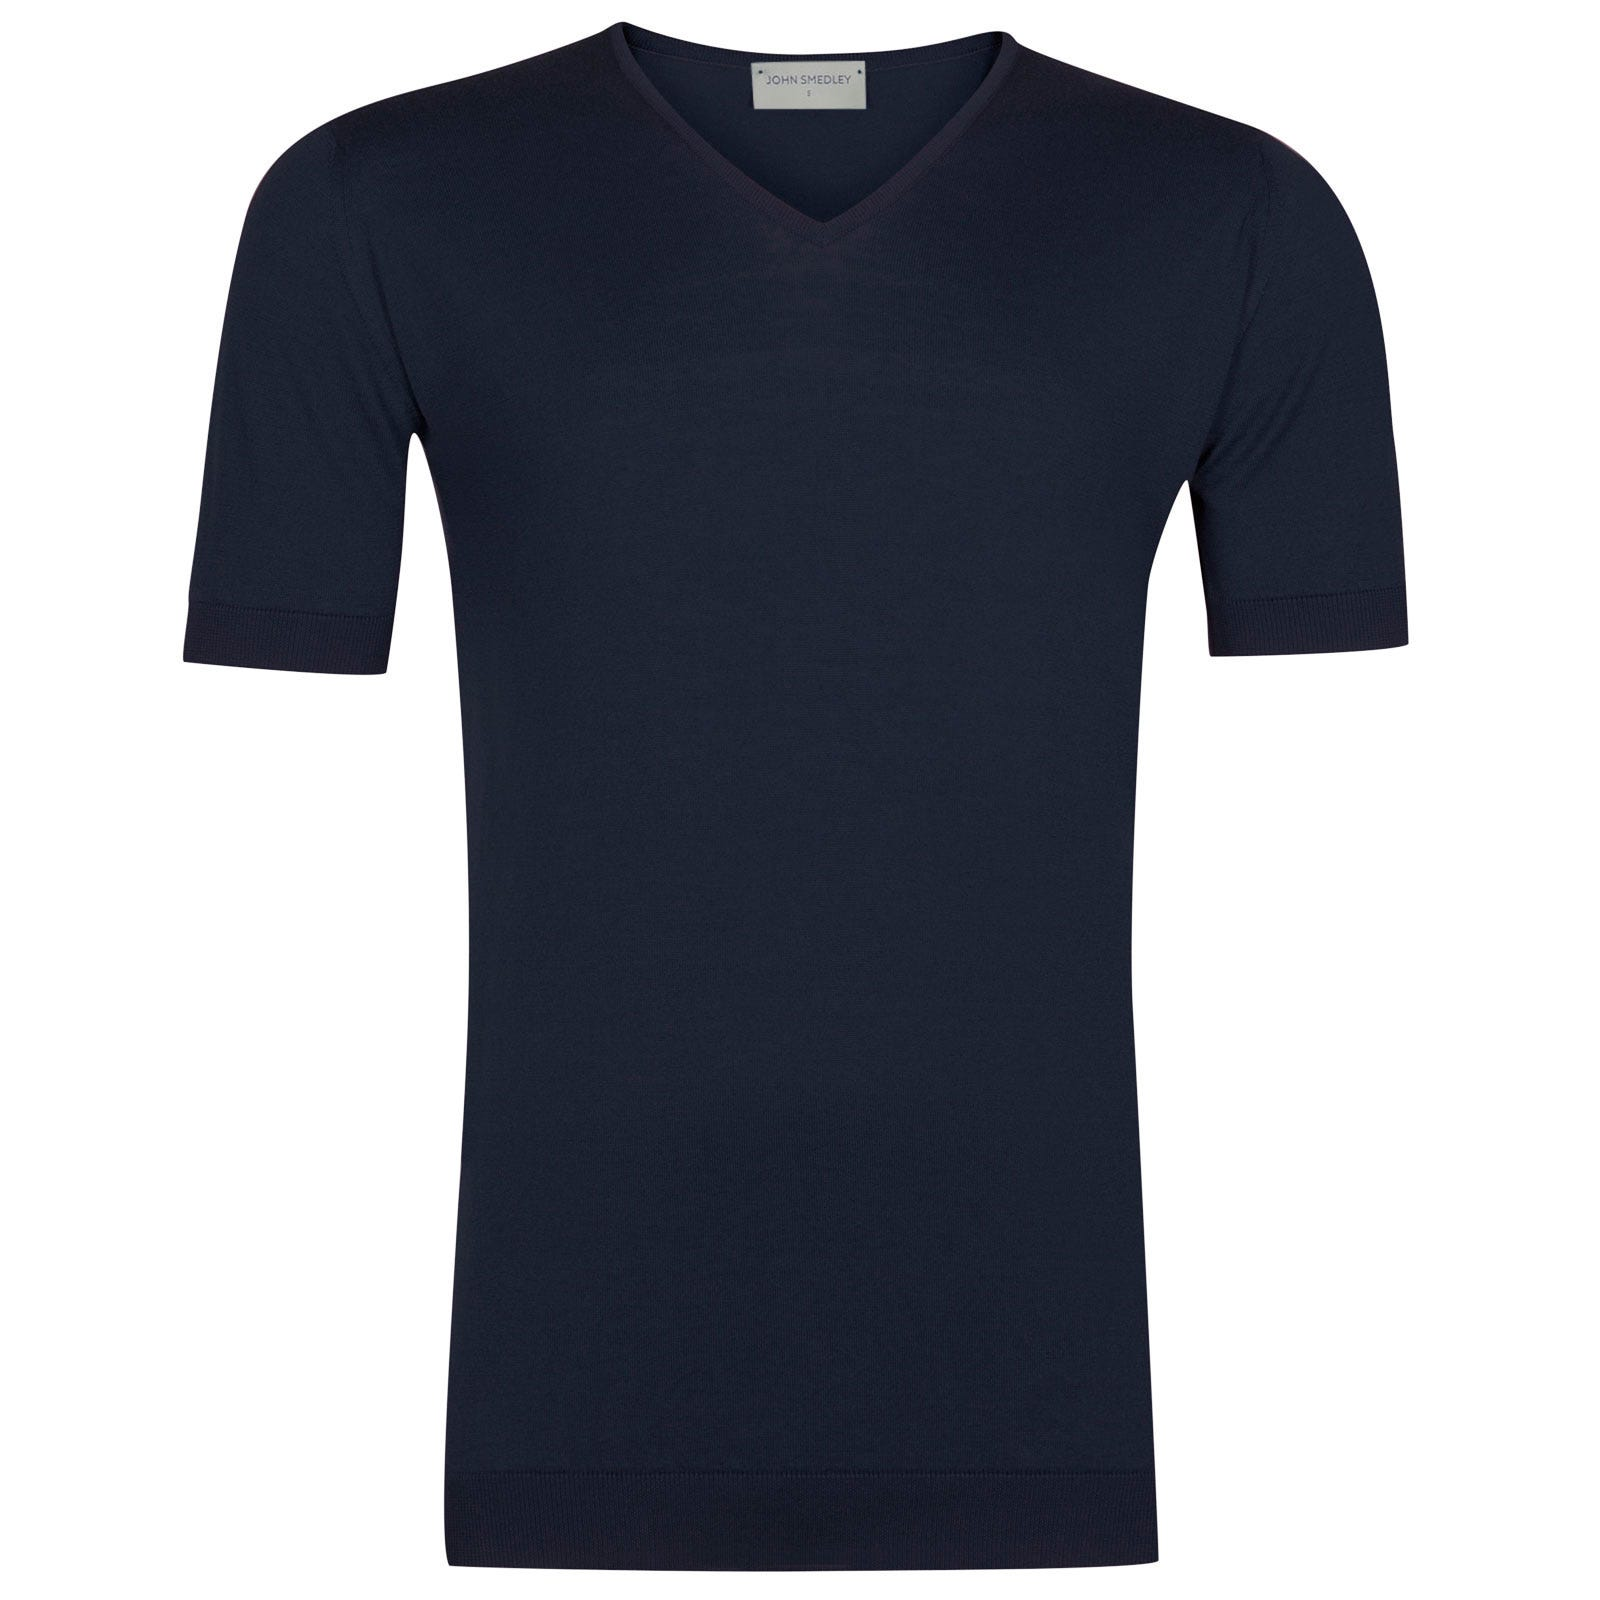 John Smedley Braedon Sea Island Cotton T-shirt in Navy-XL